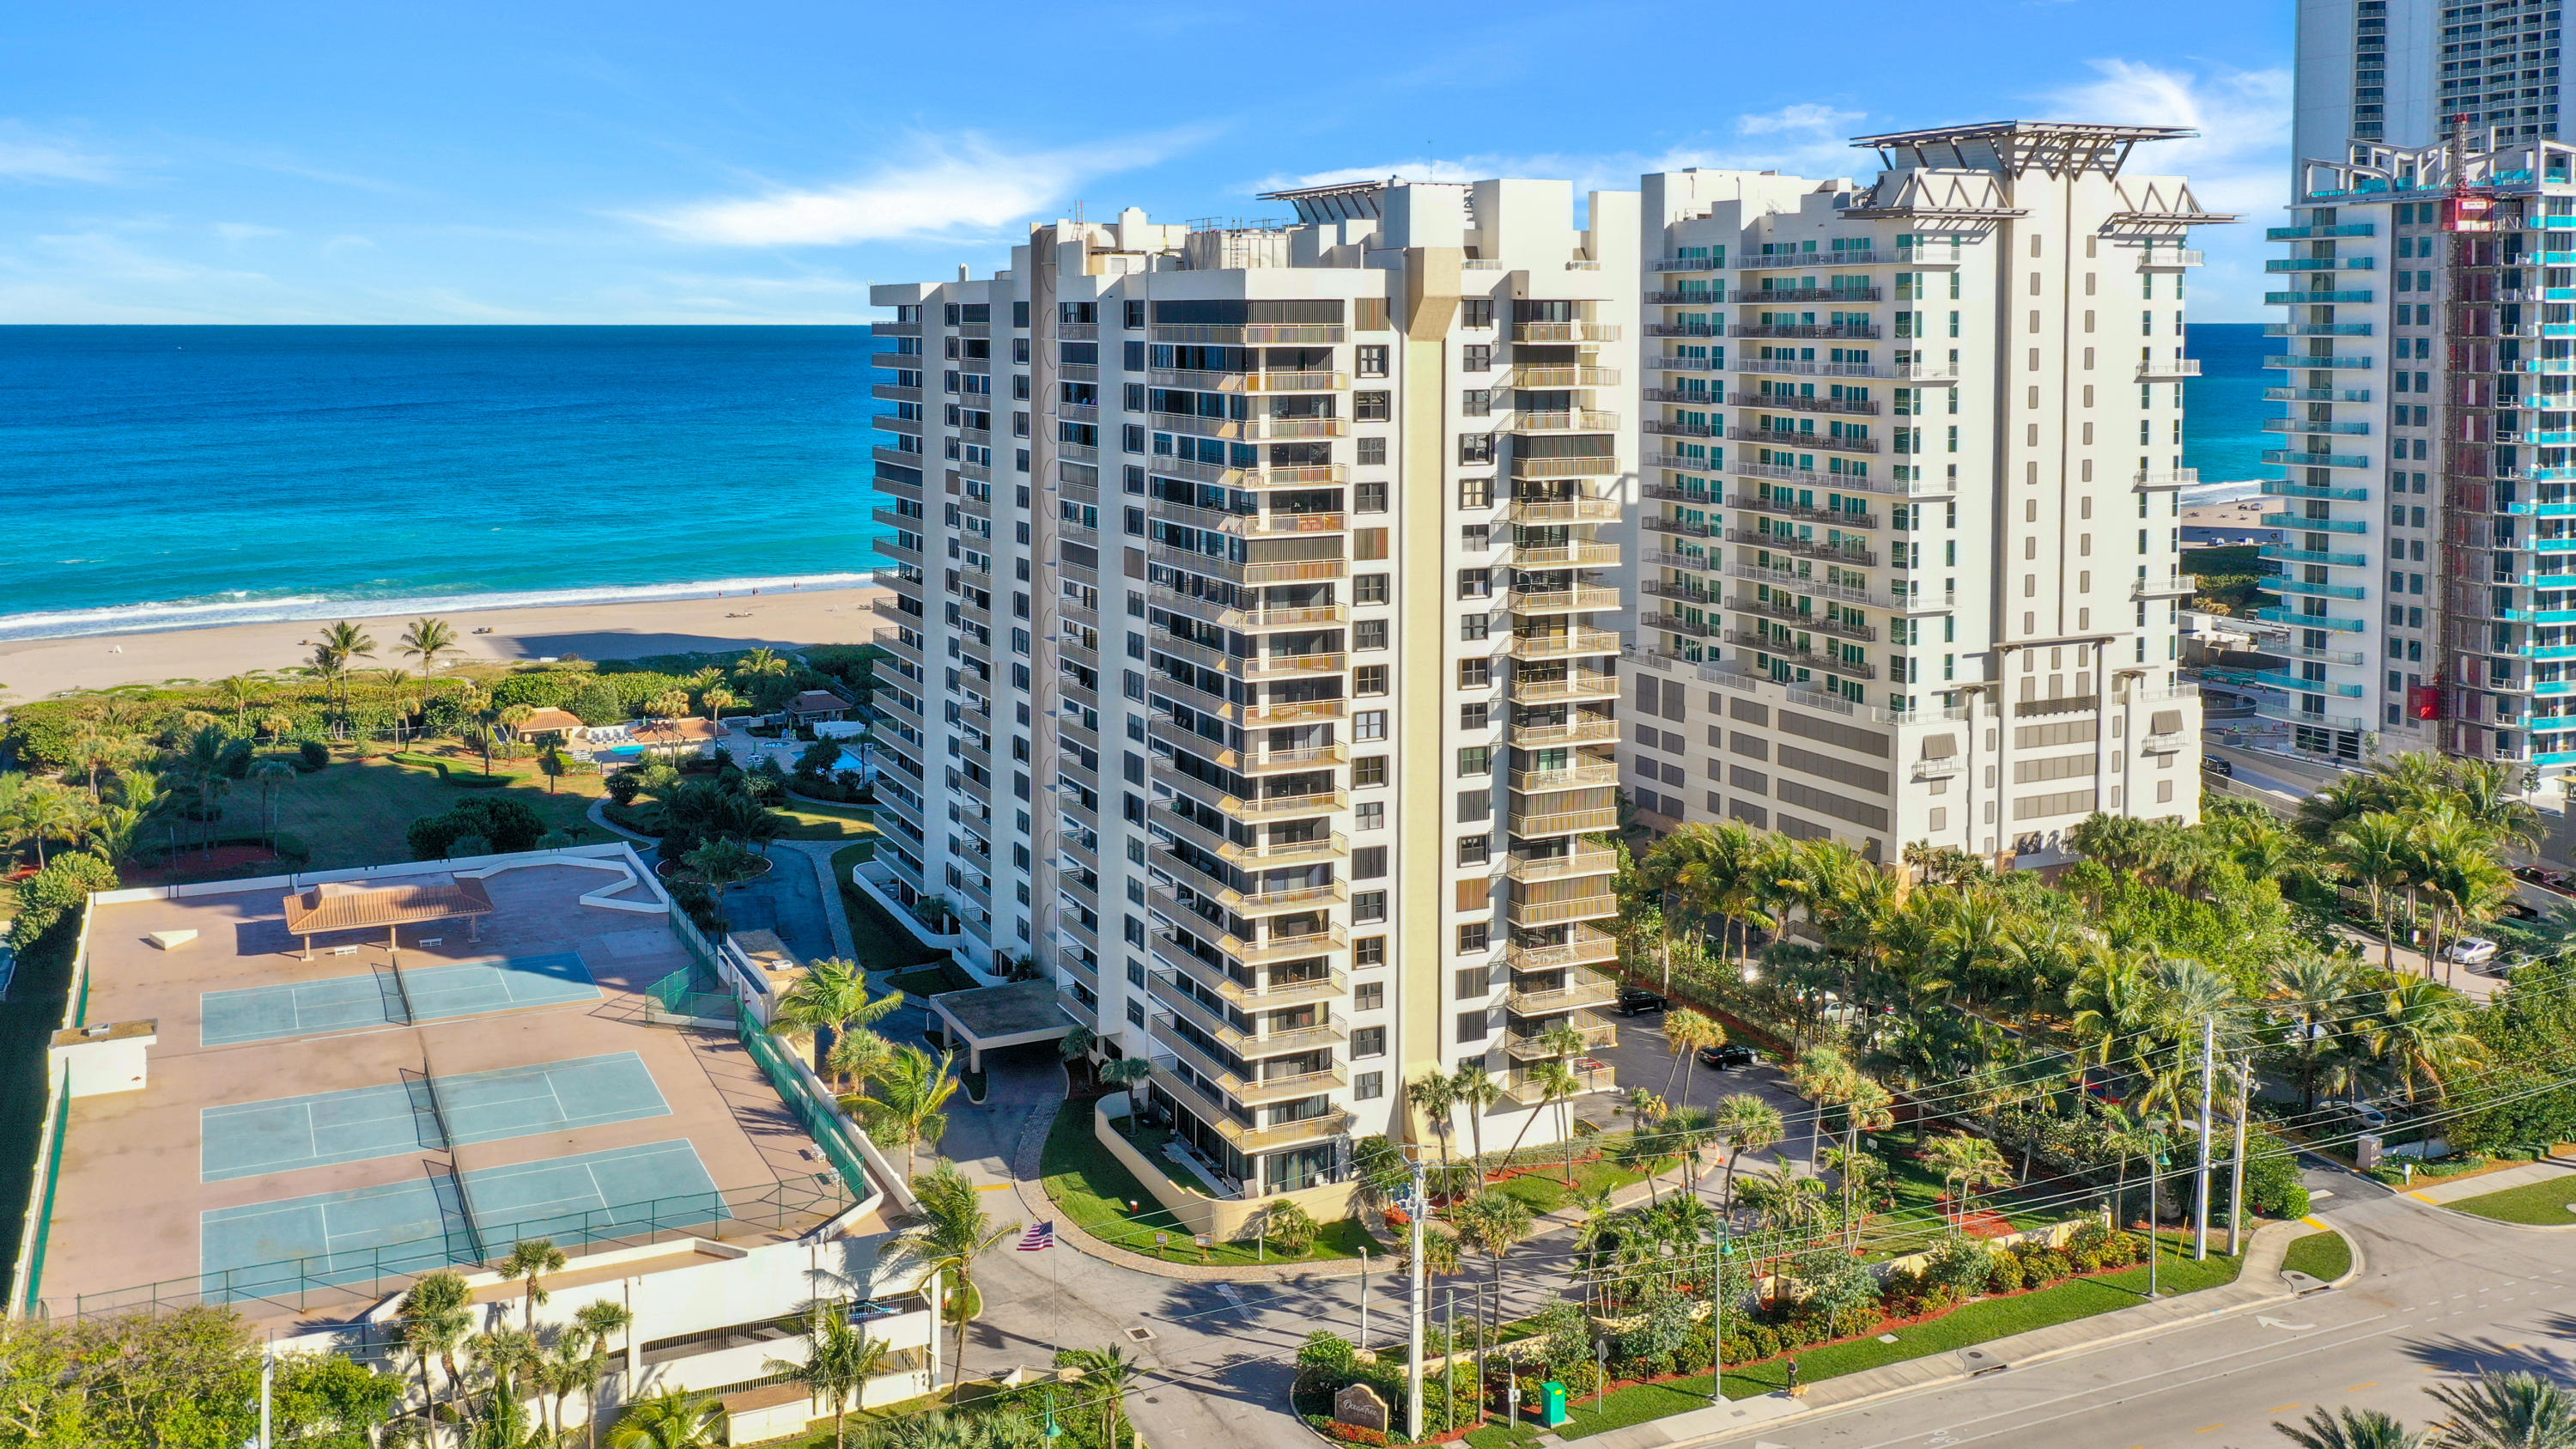 Welcome to Ocean Tree where you will truly live the Florida life and enjoy the Ocean views all around! If you want beach access, you got it! Enjoy having 2 beach access gates that are secured, 2 community pools, showers to rinse off the sand, 3 grills to enjoying family barbeques, 2 shuffle boards, fitness center, 24 hour manager, 3 tennis courts, 2 storage spaces, bike rack, banquet room, hot tub and more! Not to mention that you get beach service where you can feel the luxury of being served while relaxing. AC is around 2009, fast internet and cable is included, newer water heather, electrical box replaced 6 years ago, hurricane windows installed in 2008, brand new laminate flooring, freshly painted. Great for anyone wanting to rent it out and Priced to sell!